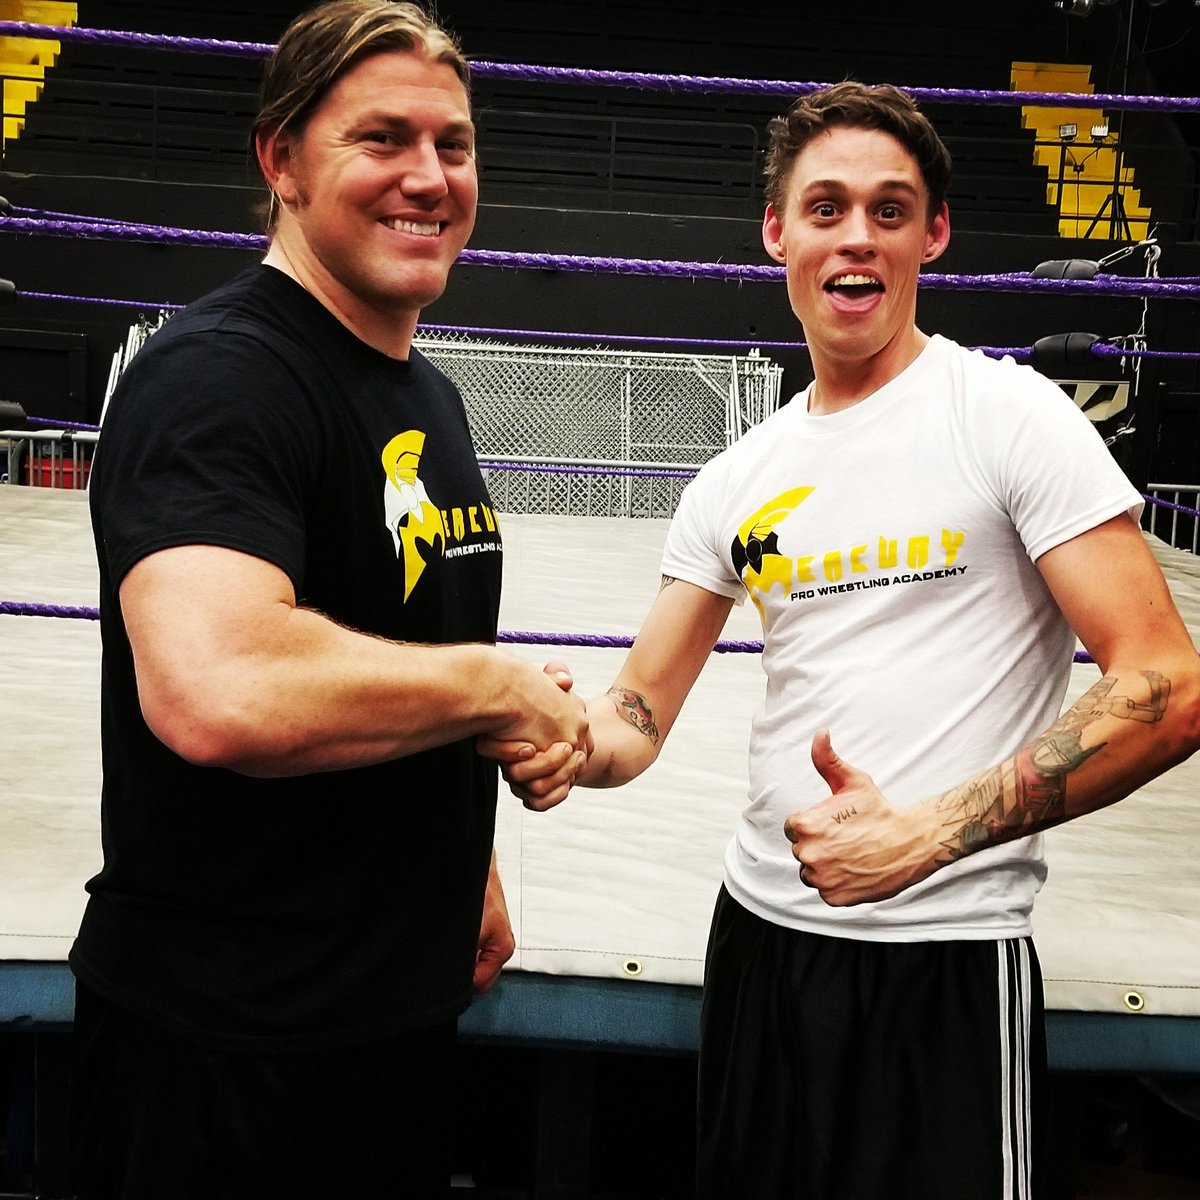 We are happy to welcome our newest #ProWrestling student Evan Perry to #MPWA! #Training #School #Athletics #Fitness #Golden #Colorado<br>http://pic.twitter.com/HwdfgWwMw2